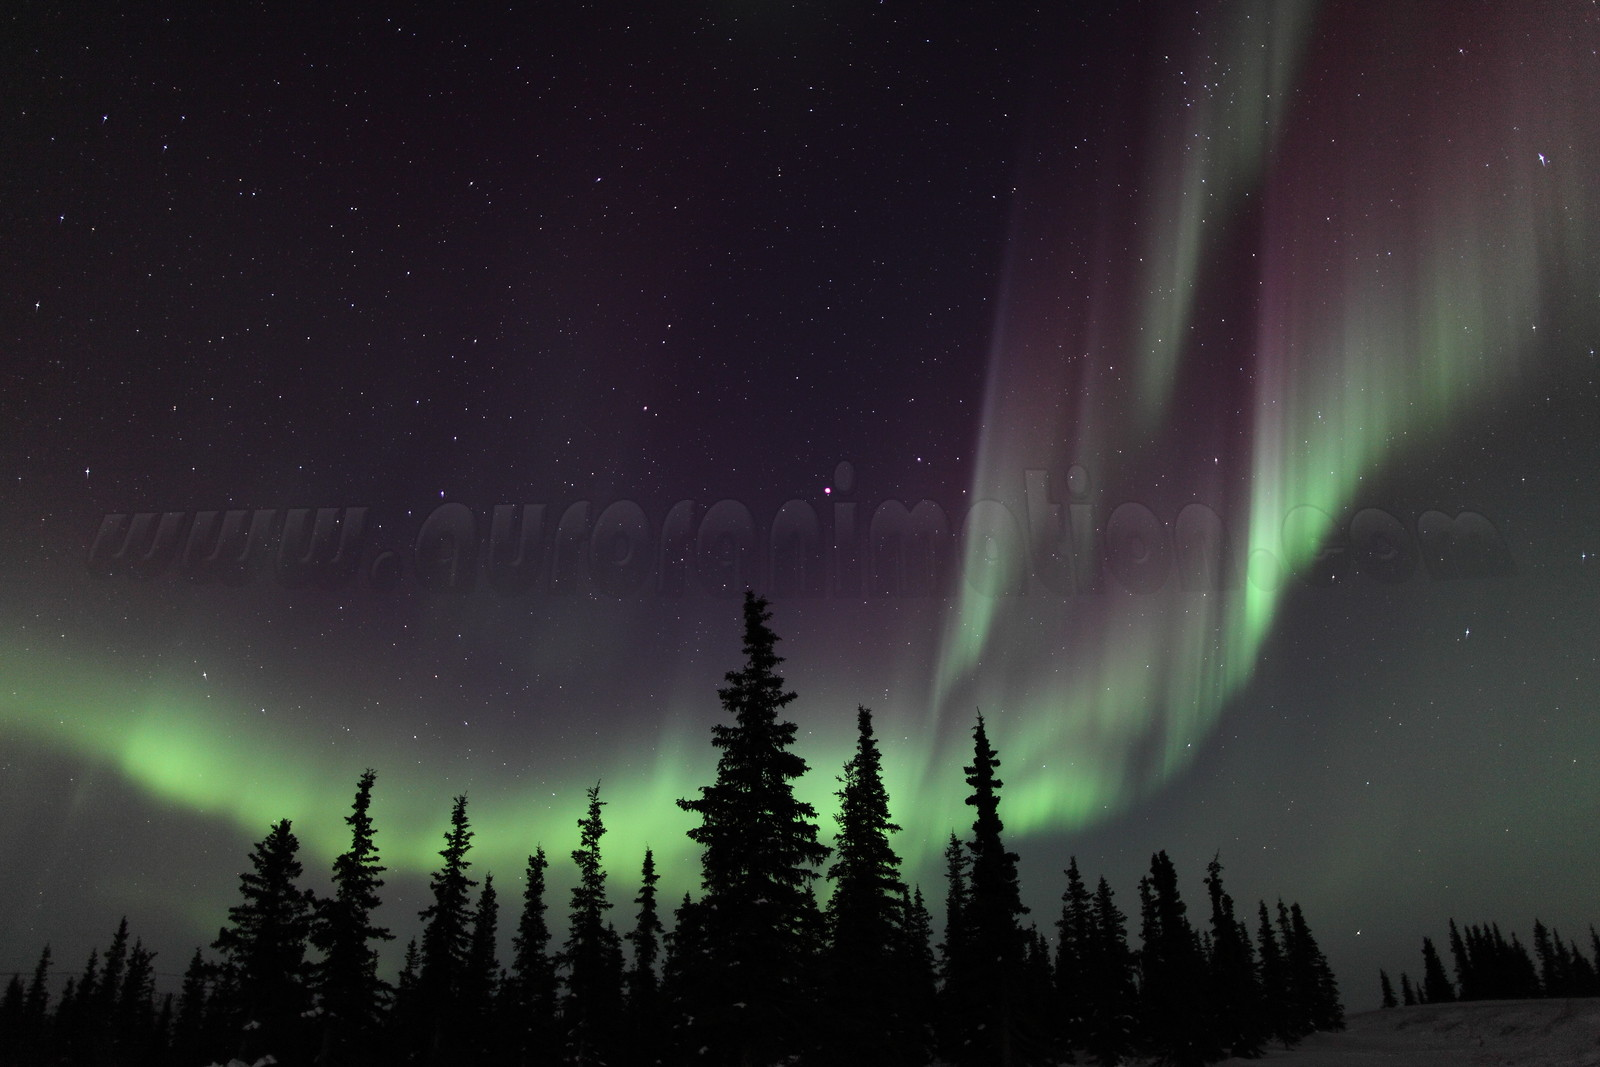 Northern Lights at the Arctic Circle in Alaska on March 17, 2013 - 00:09 AM<br /> <br /> Canon 5D MKII with EF 24mm f/1.4L II